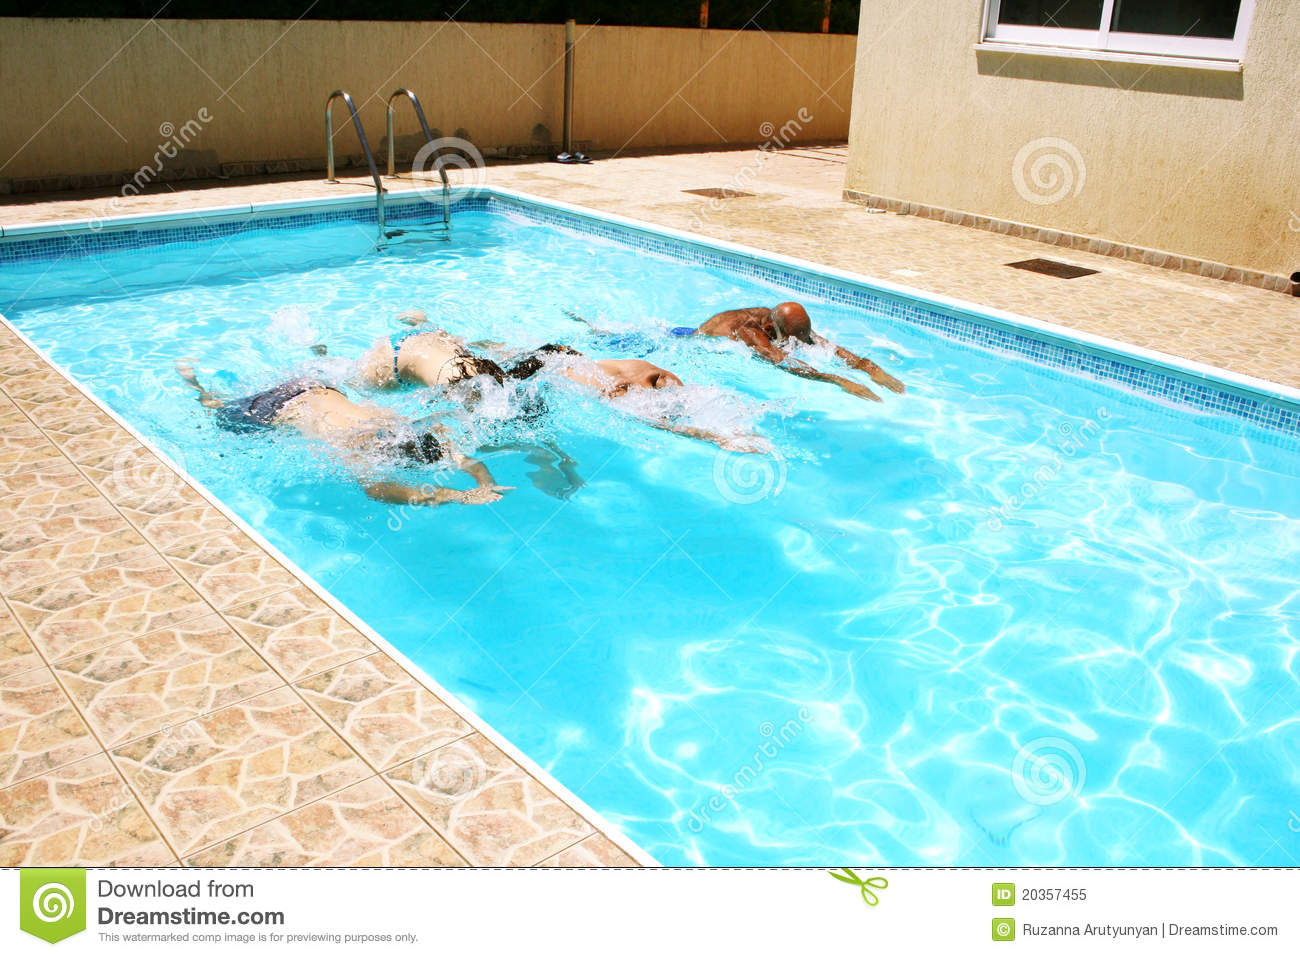 People In Swimming Pool Royalty Free Stock Photo - Image: 20357455